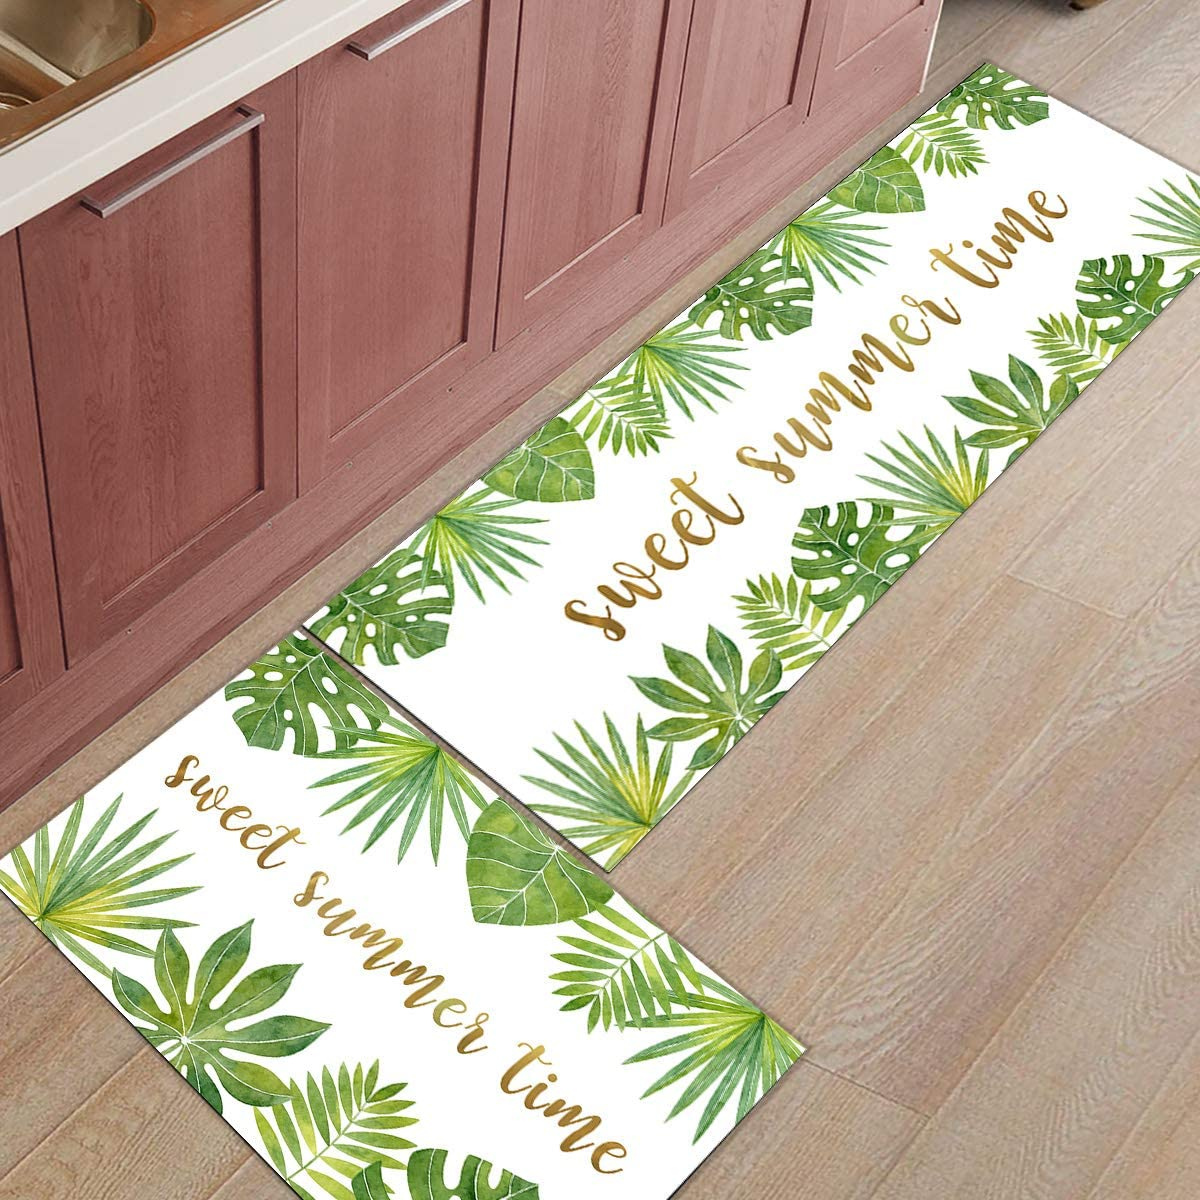 2 Pieces Opening large release sale Kitchen 100% quality warranty Rug Set Non-Slip Rugs Mat Doormat Backing Throw